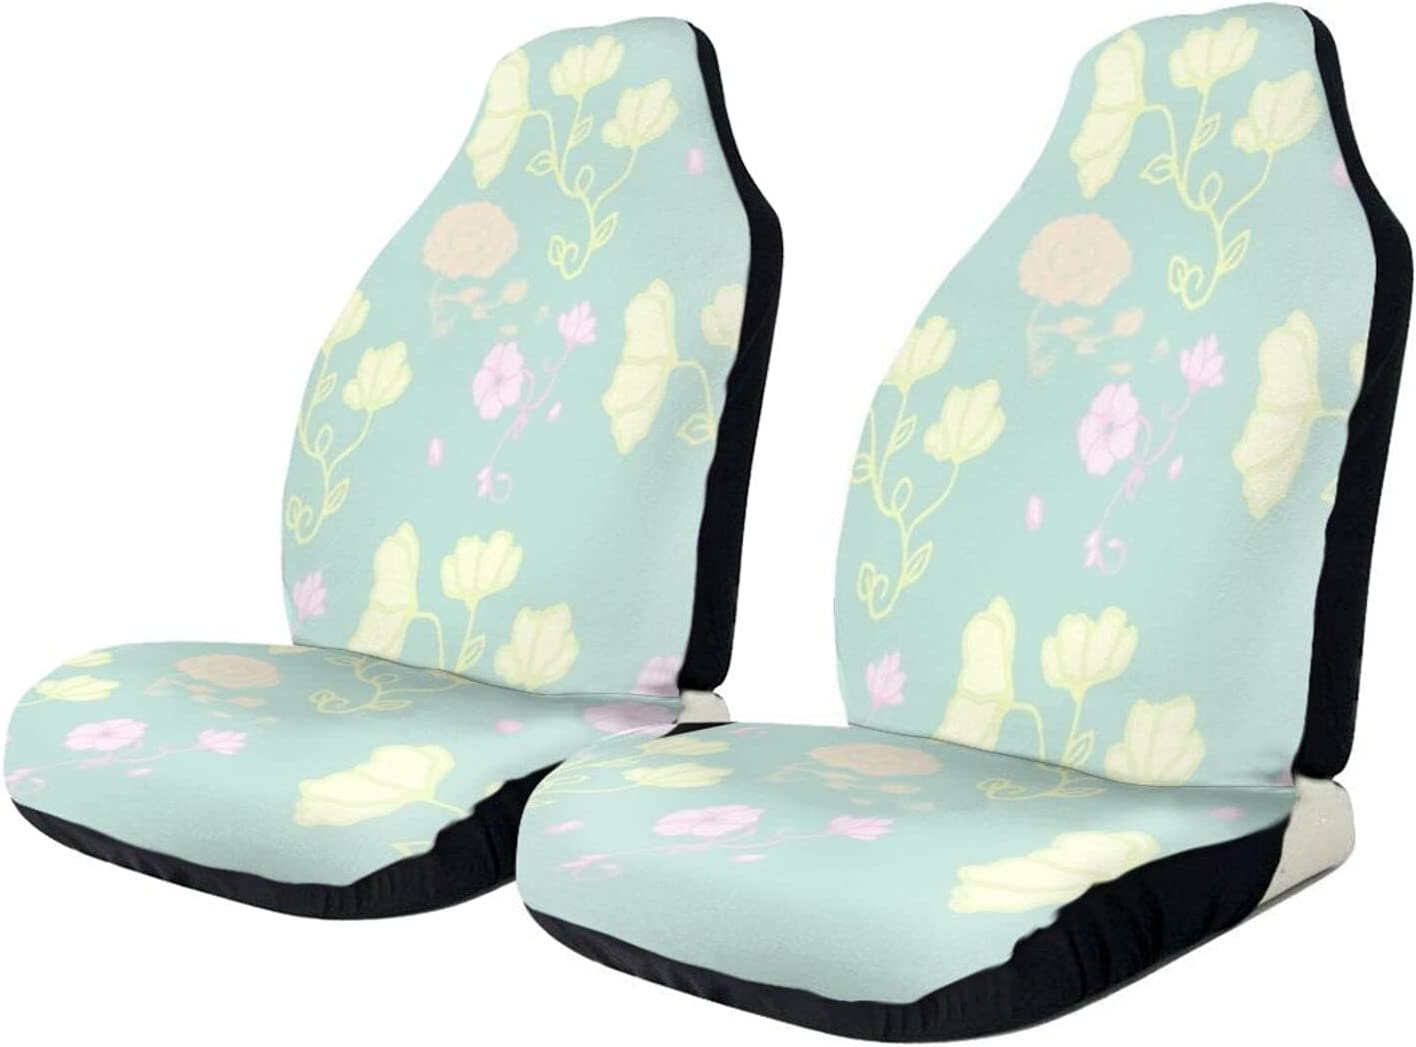 Universal Car Seat Cover 1pc Popular Industry No. 1 products Covers SUV 2pcs Front for